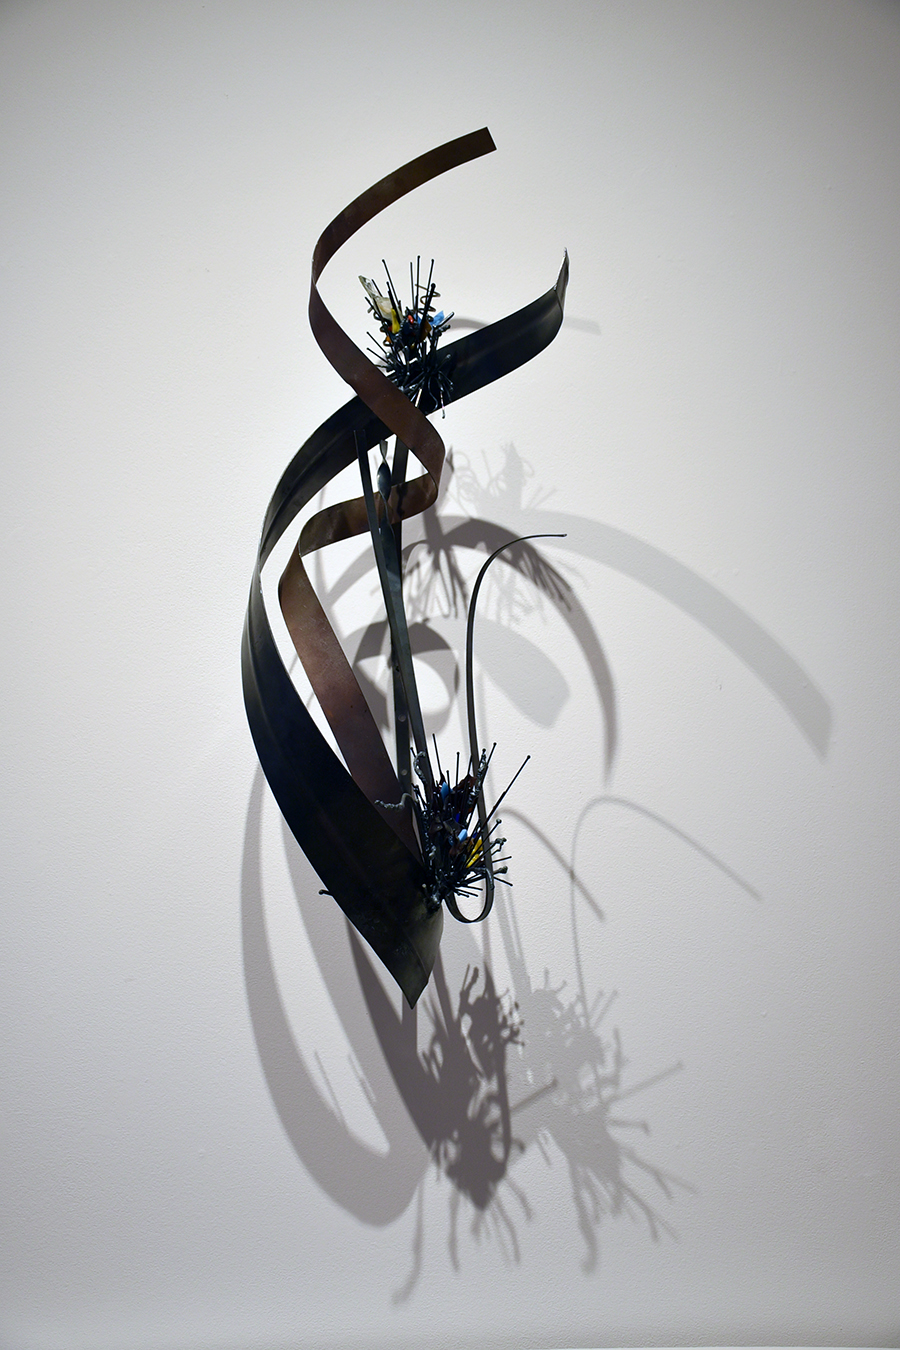 Mary Rieser Heintjes Elements- 26 Iron 2018 Welded Steel & Fused Glass 33 x 12 x 14 inches $4,800, low res.jpg